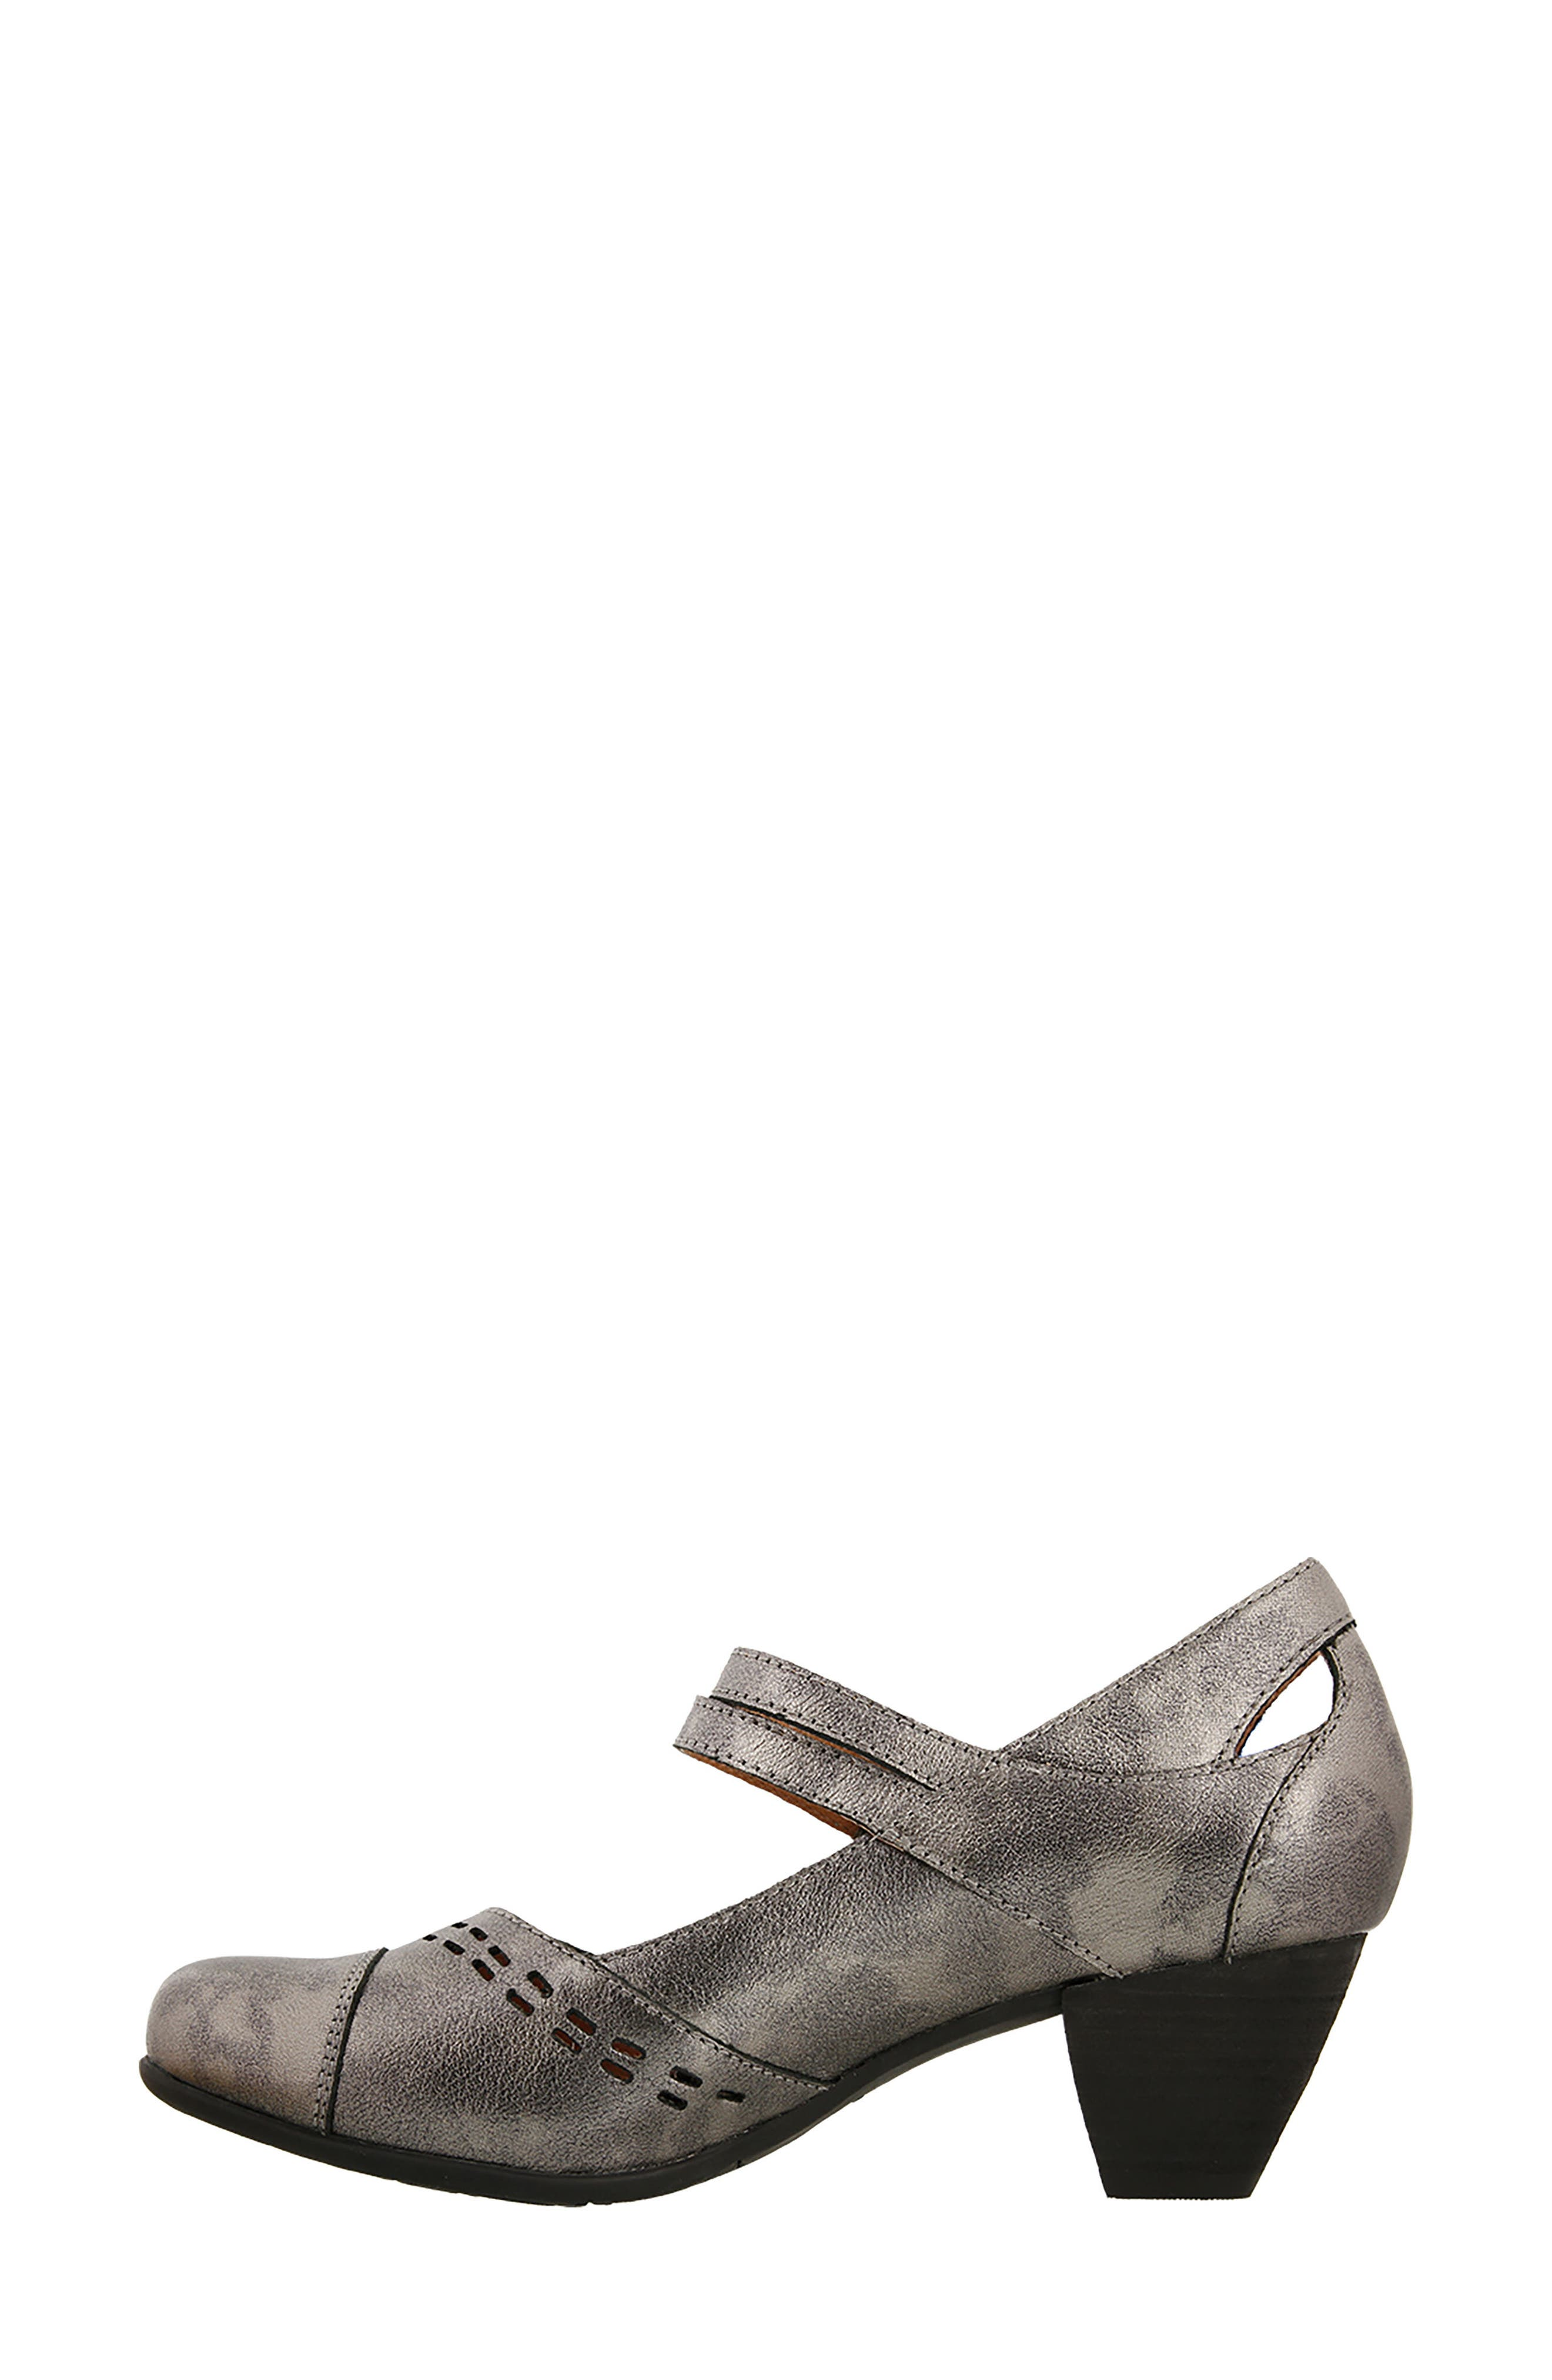 Stunner Laser Cutout Mary Jane Pump,                             Alternate thumbnail 4, color,                             Pewter Leather